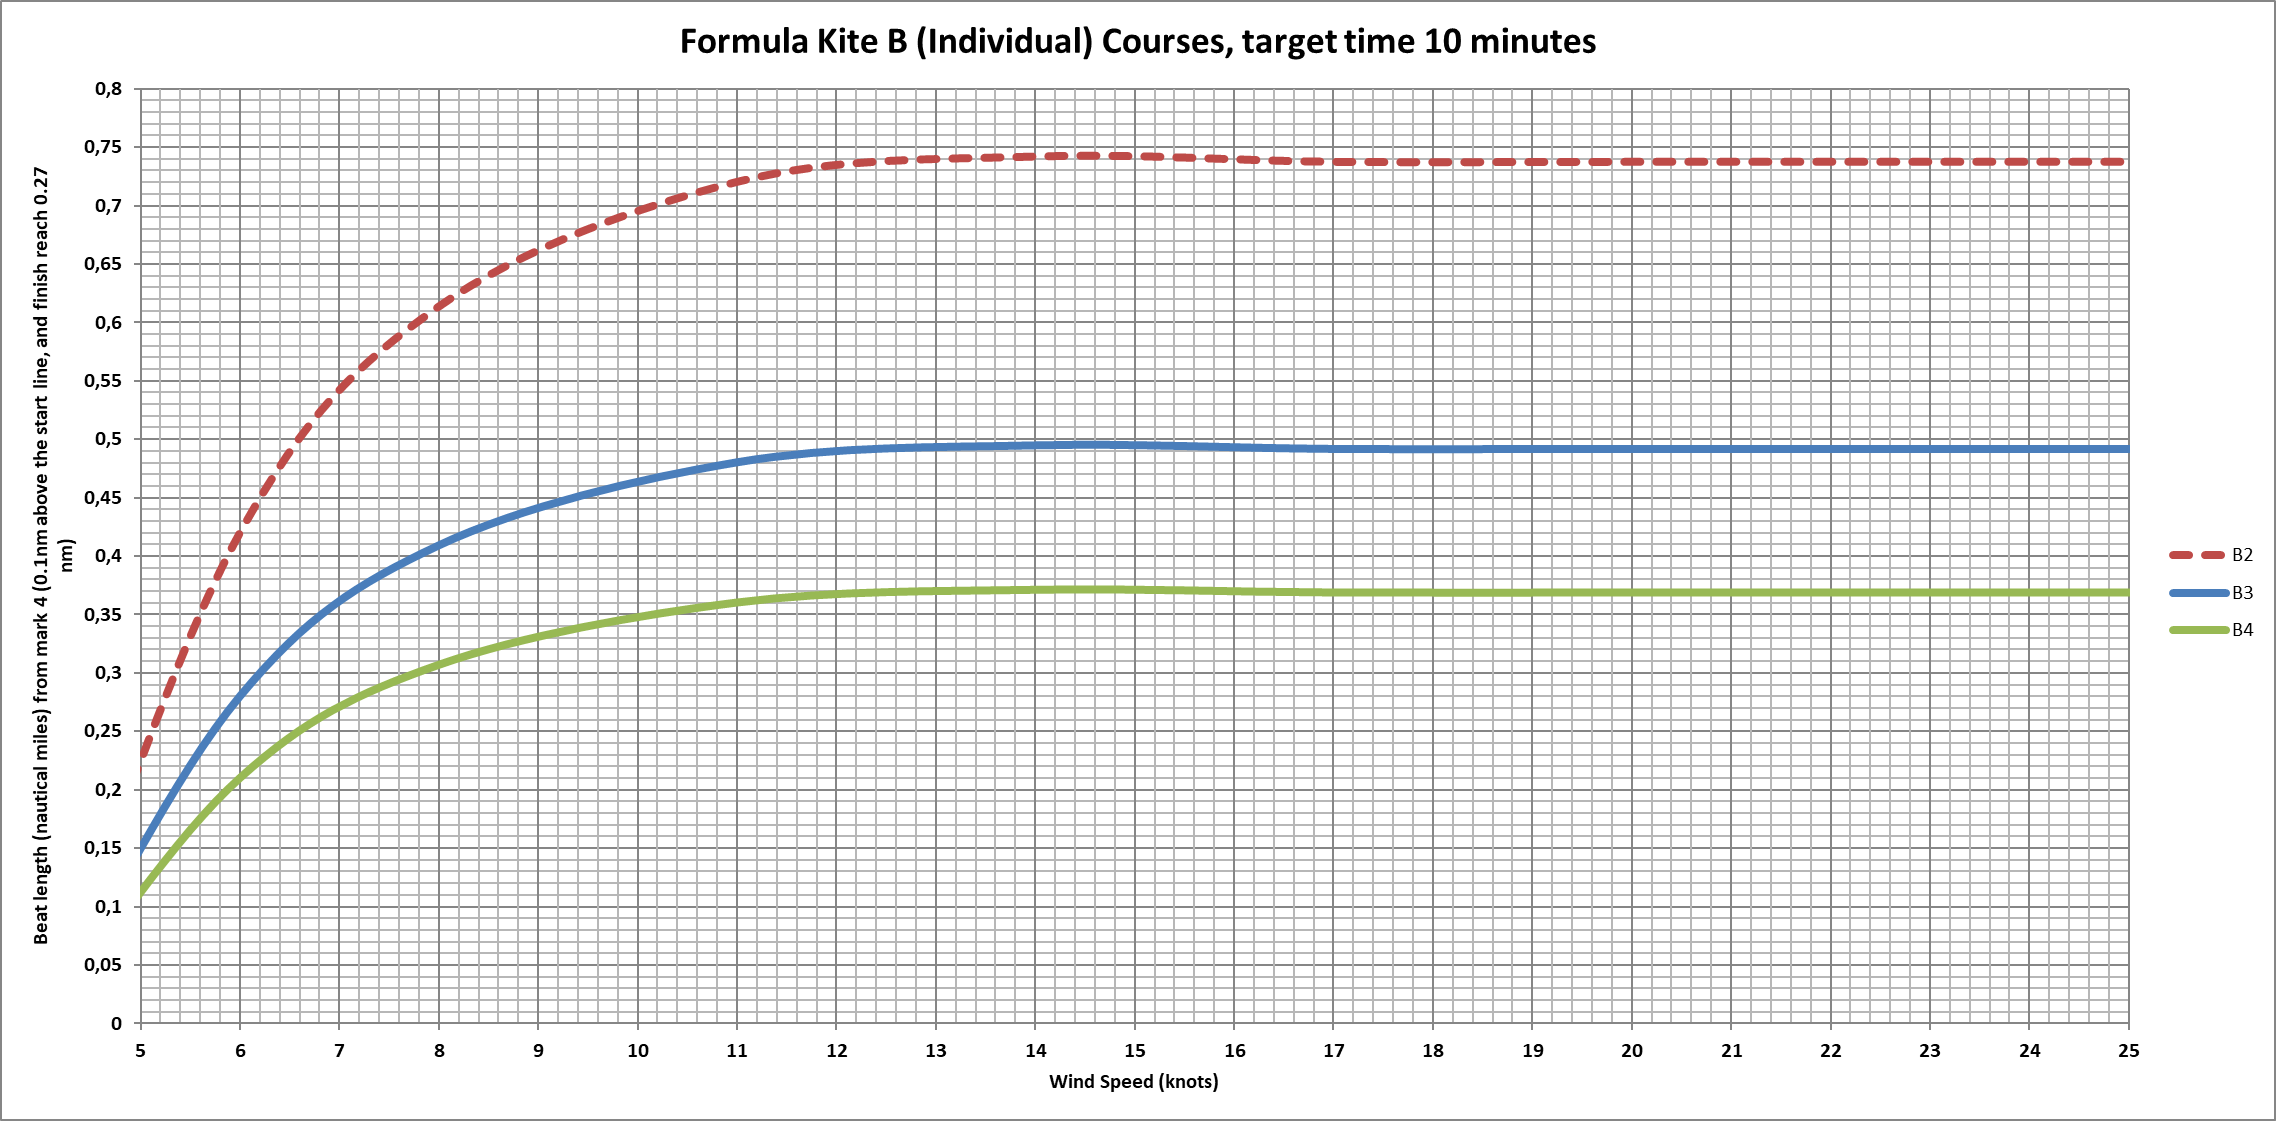 speed chart Formula Kite B for 10 mins